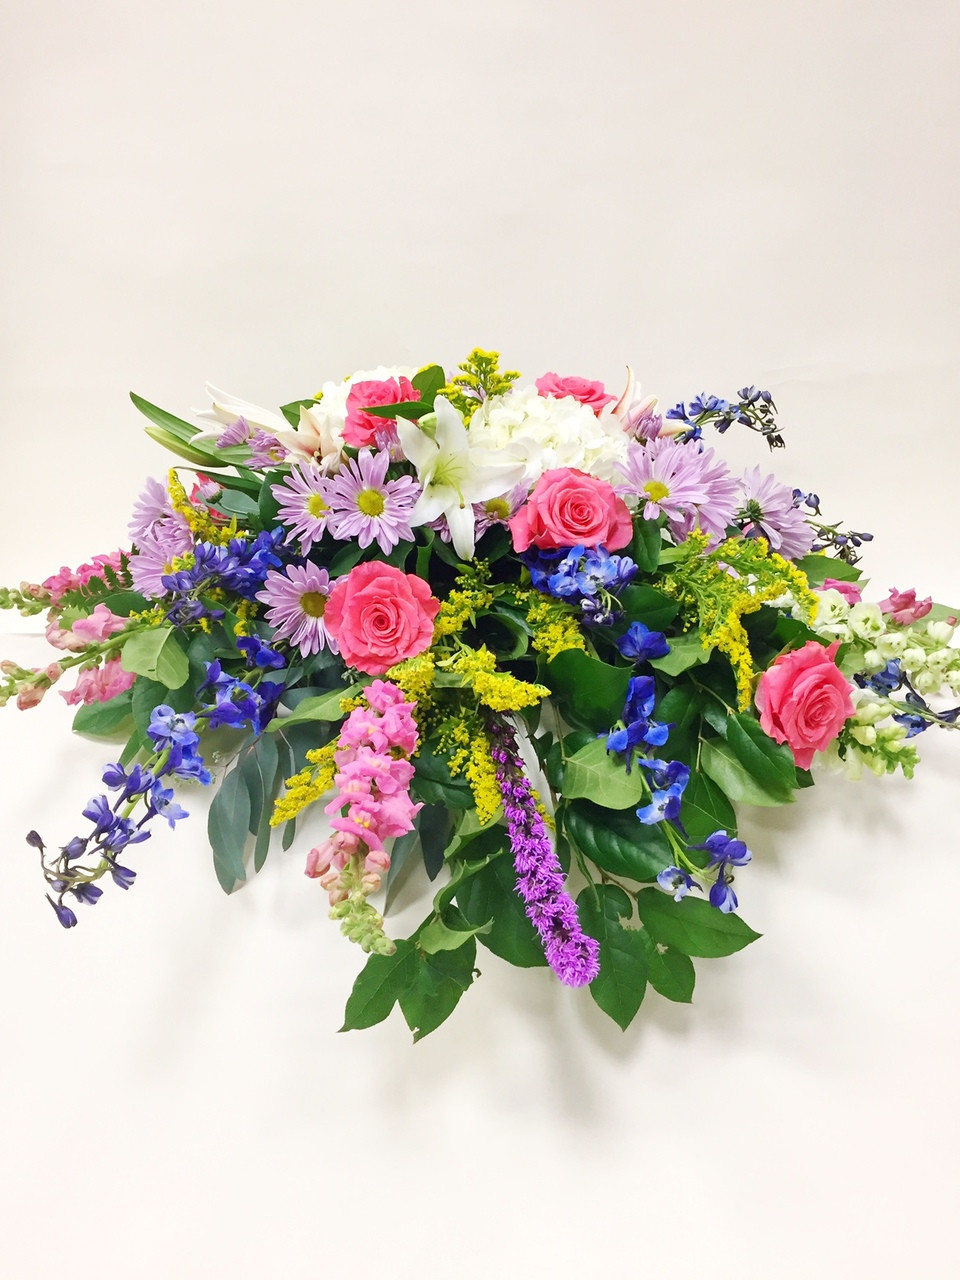 Resting roses casket spray sympathy flowers fresh flowers beautiful fresh flower casket spray designed with pinks purples and whites designed locally izmirmasajfo